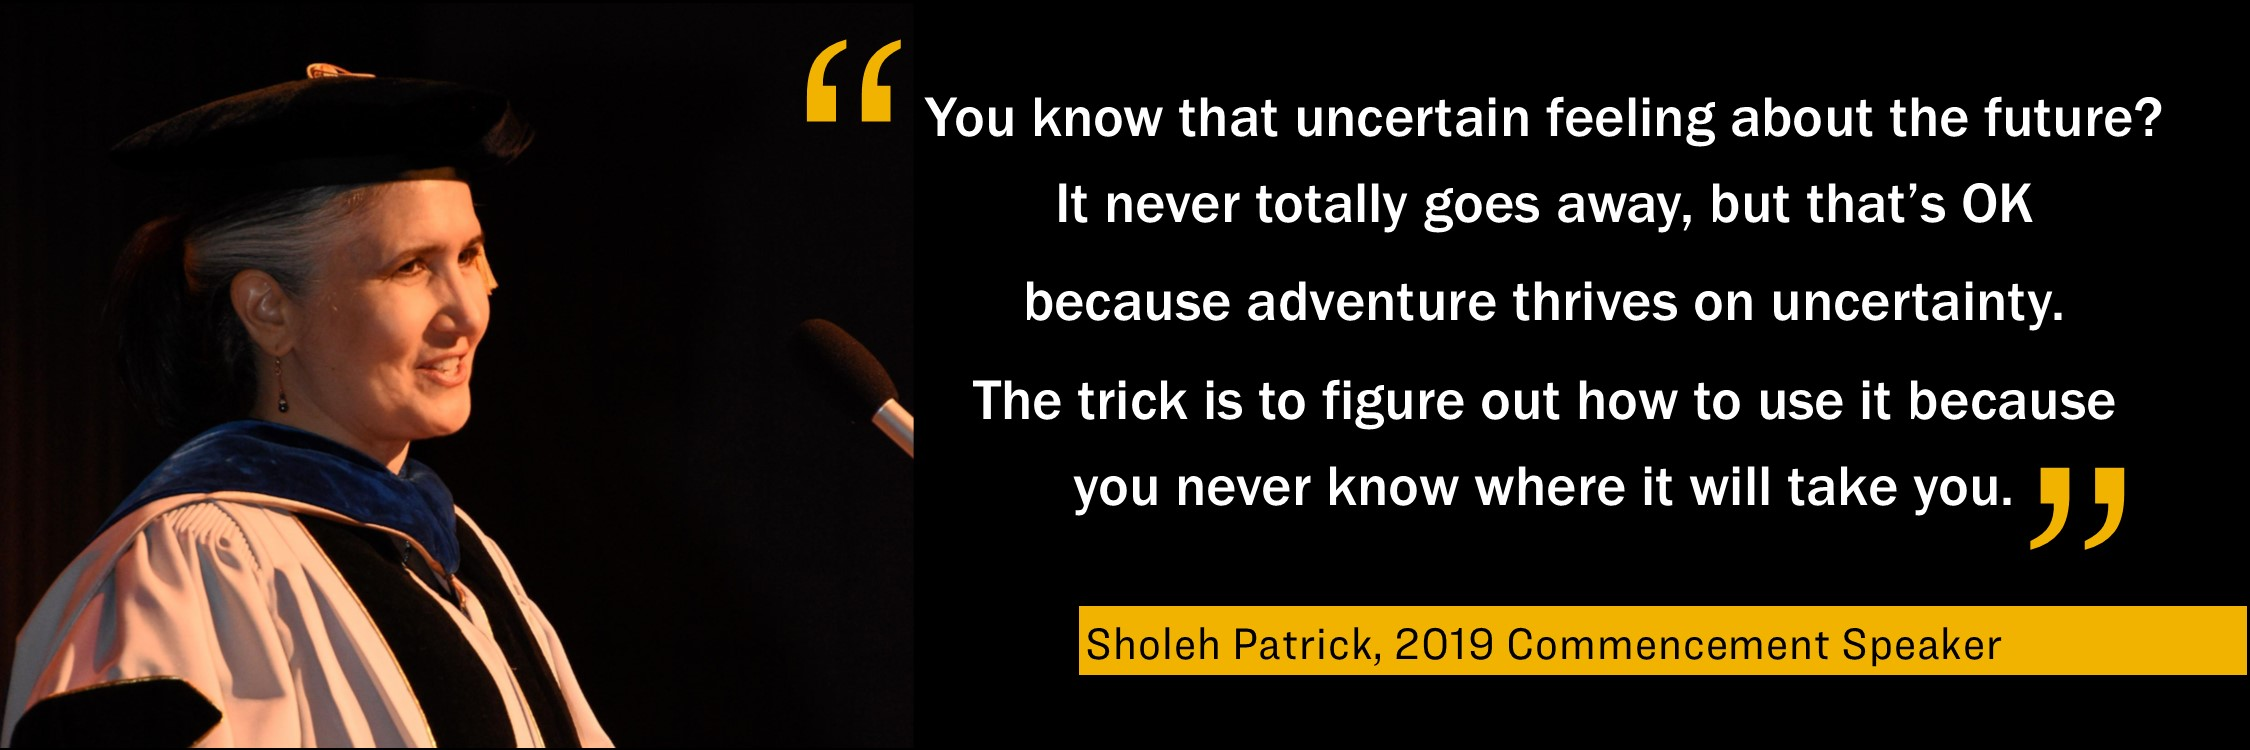 """You know that uncertain feeling about the future? It never totally goes away, but that's OK because adventure thrives on uncertainty. The trick is to figure out how to use it because you never know where it will take you."" Sholeh Patrick, 2019, Commencement Speaker"